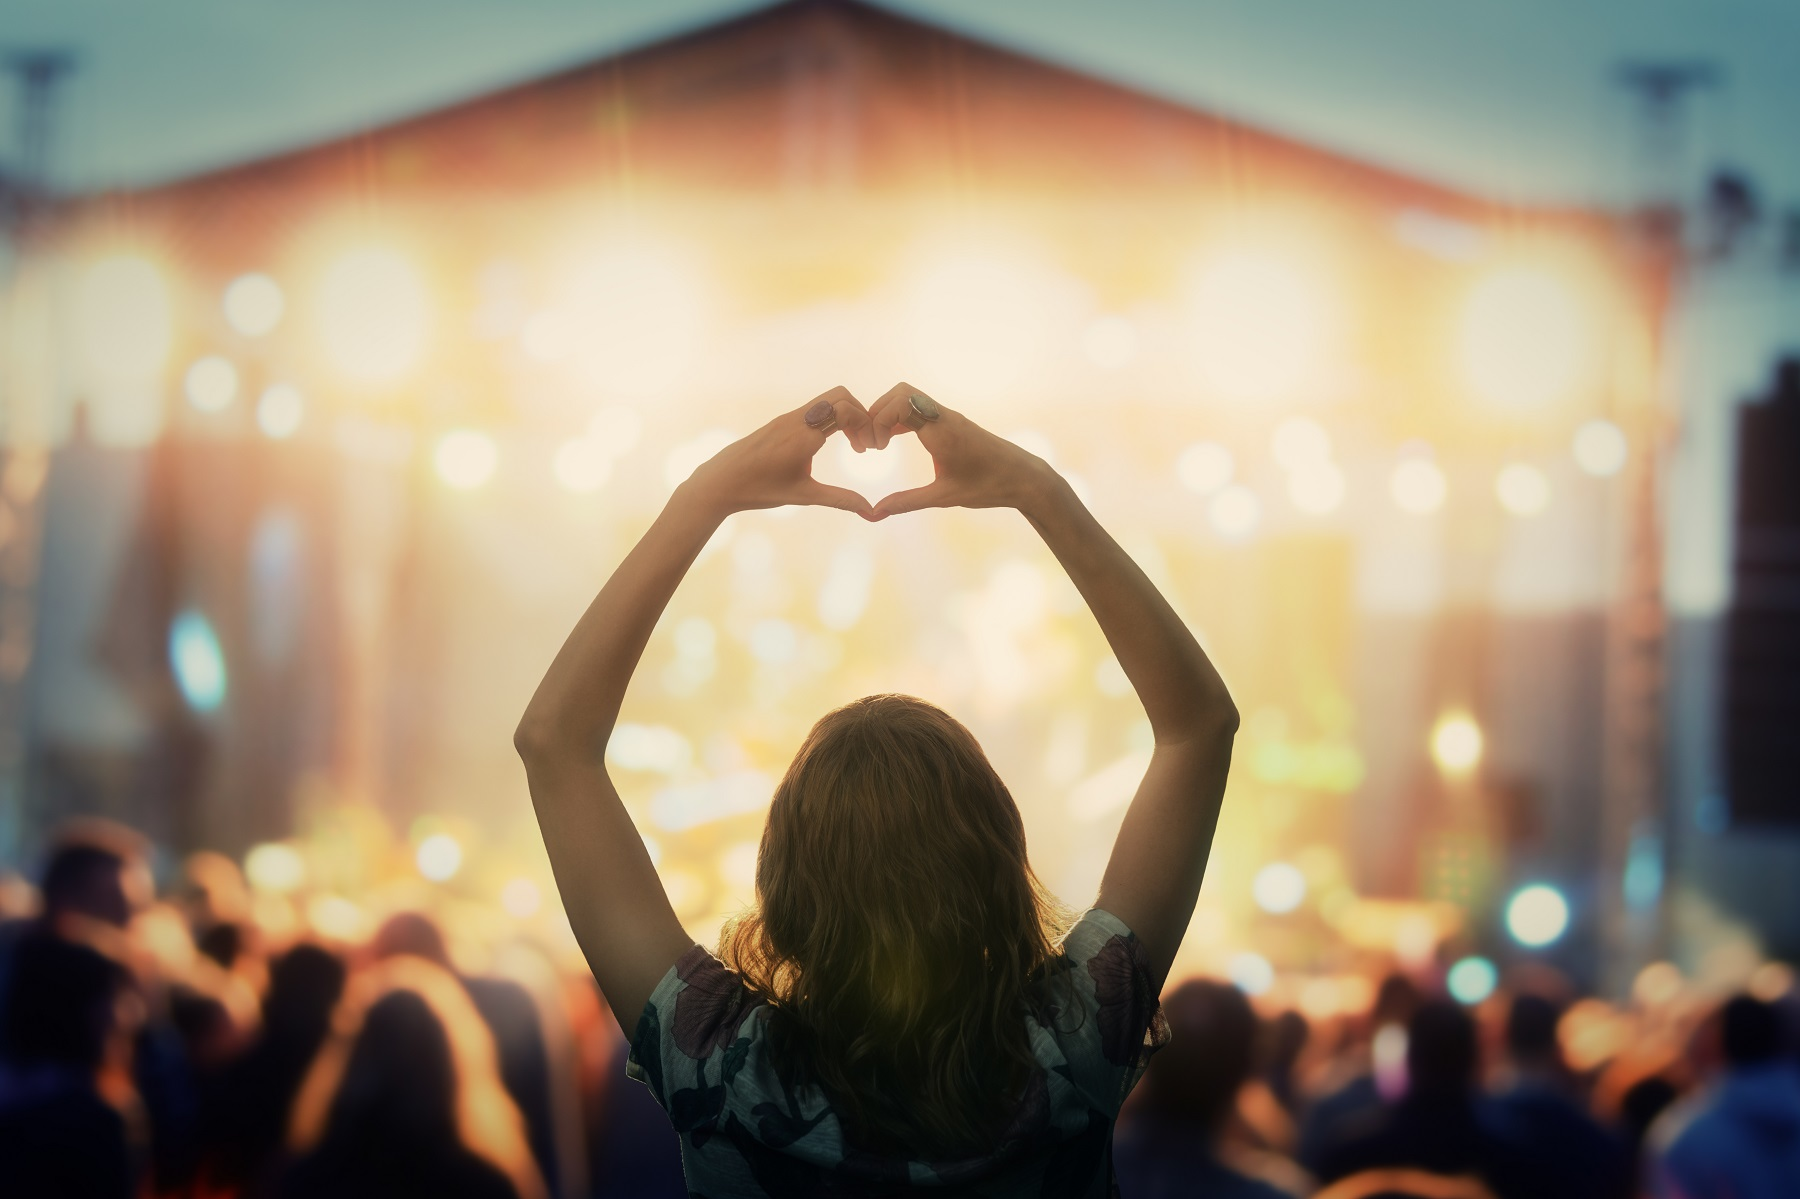 Girl making a heart-shape symbol for her favorite band.